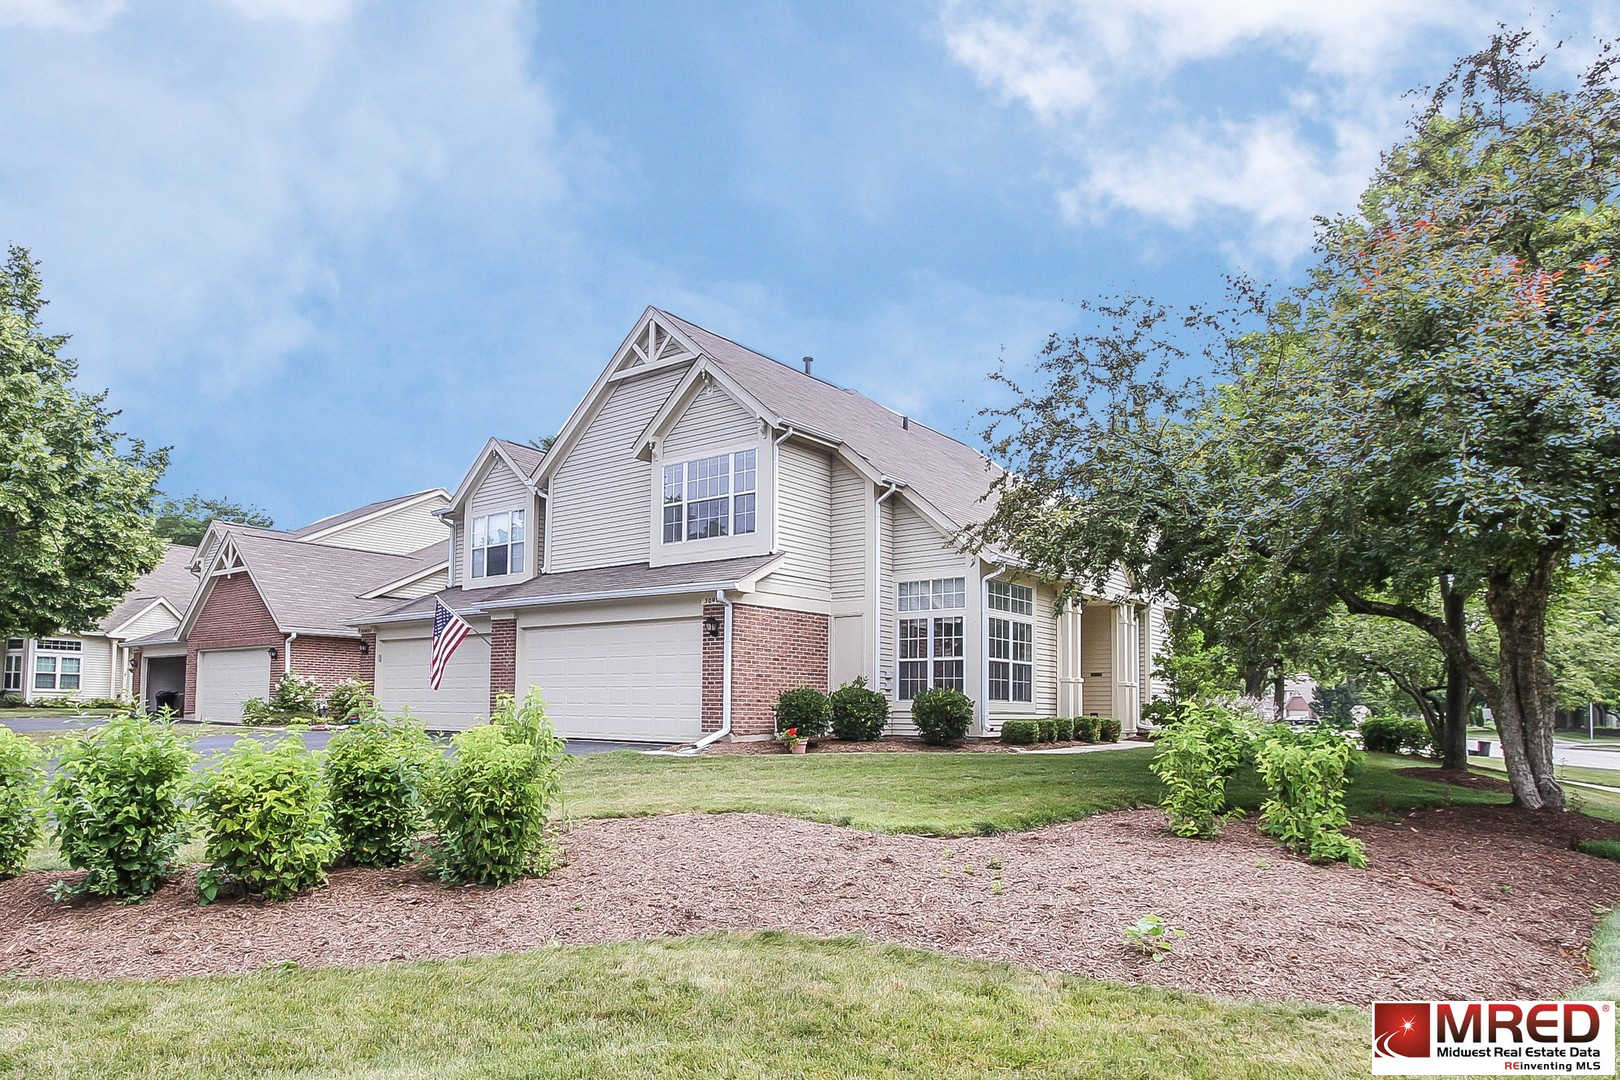 30W026 Redwood Court, Warrenville, IL 60555 now has a new price of $230,000!